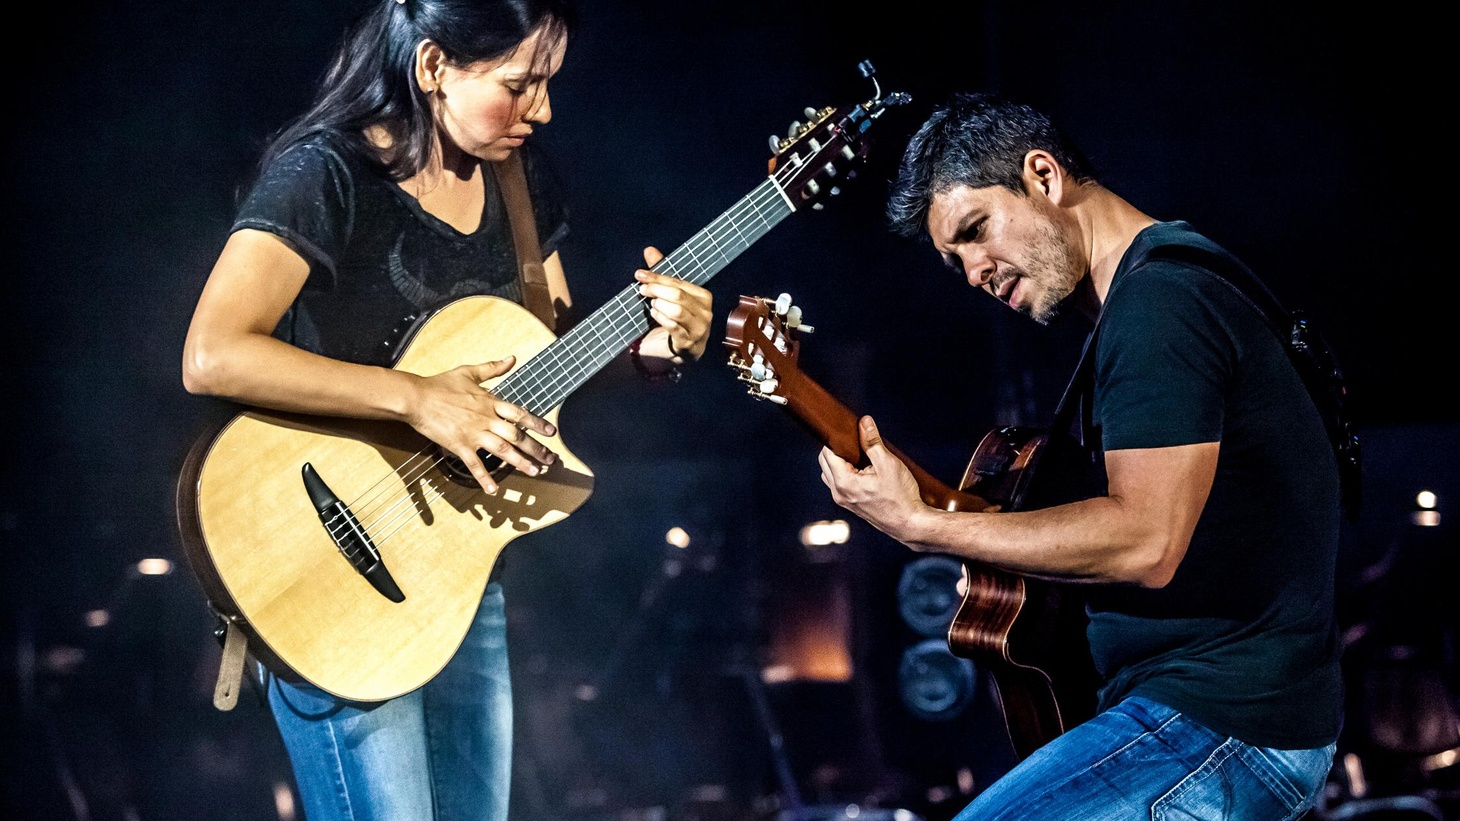 In their newest album, Rodrigo y Gabriela return to their roots, reminding listeners why they fell in love with the Mexican duo in the first place.